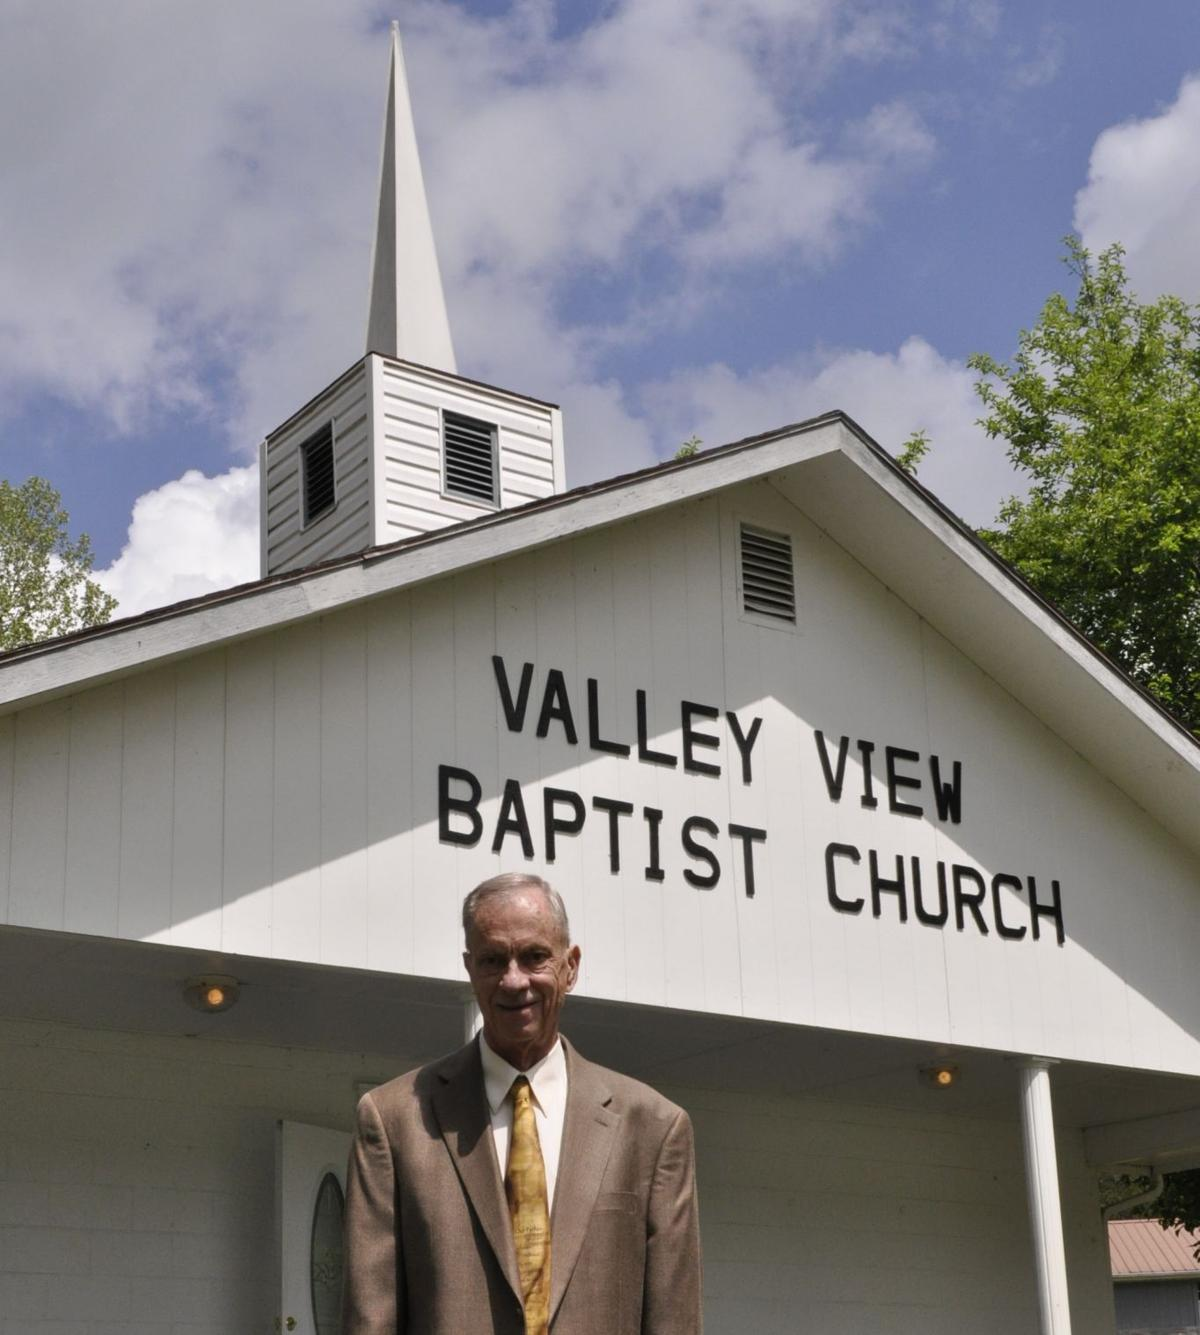 just plain talk david popiel newportplaintalk com old 15th valley view baptist church has interesting history